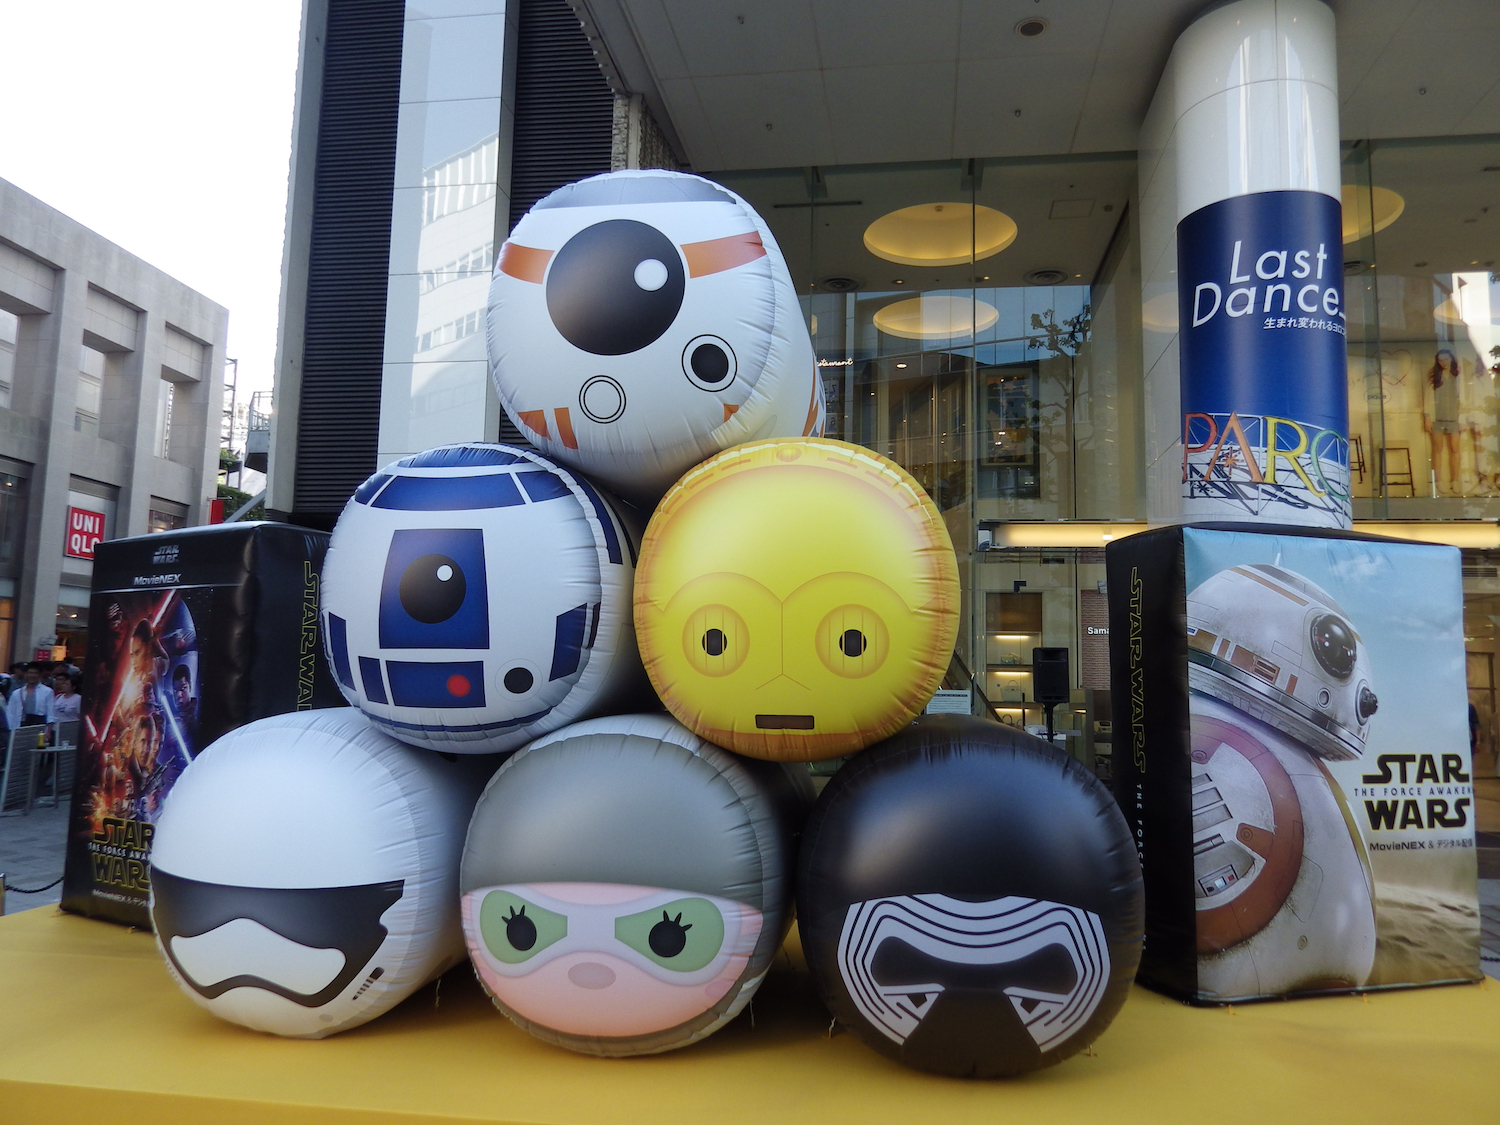 Huge inflatable Tsum Tsums outside the Parco building in Shibuya, on Star Wars Day 2016.